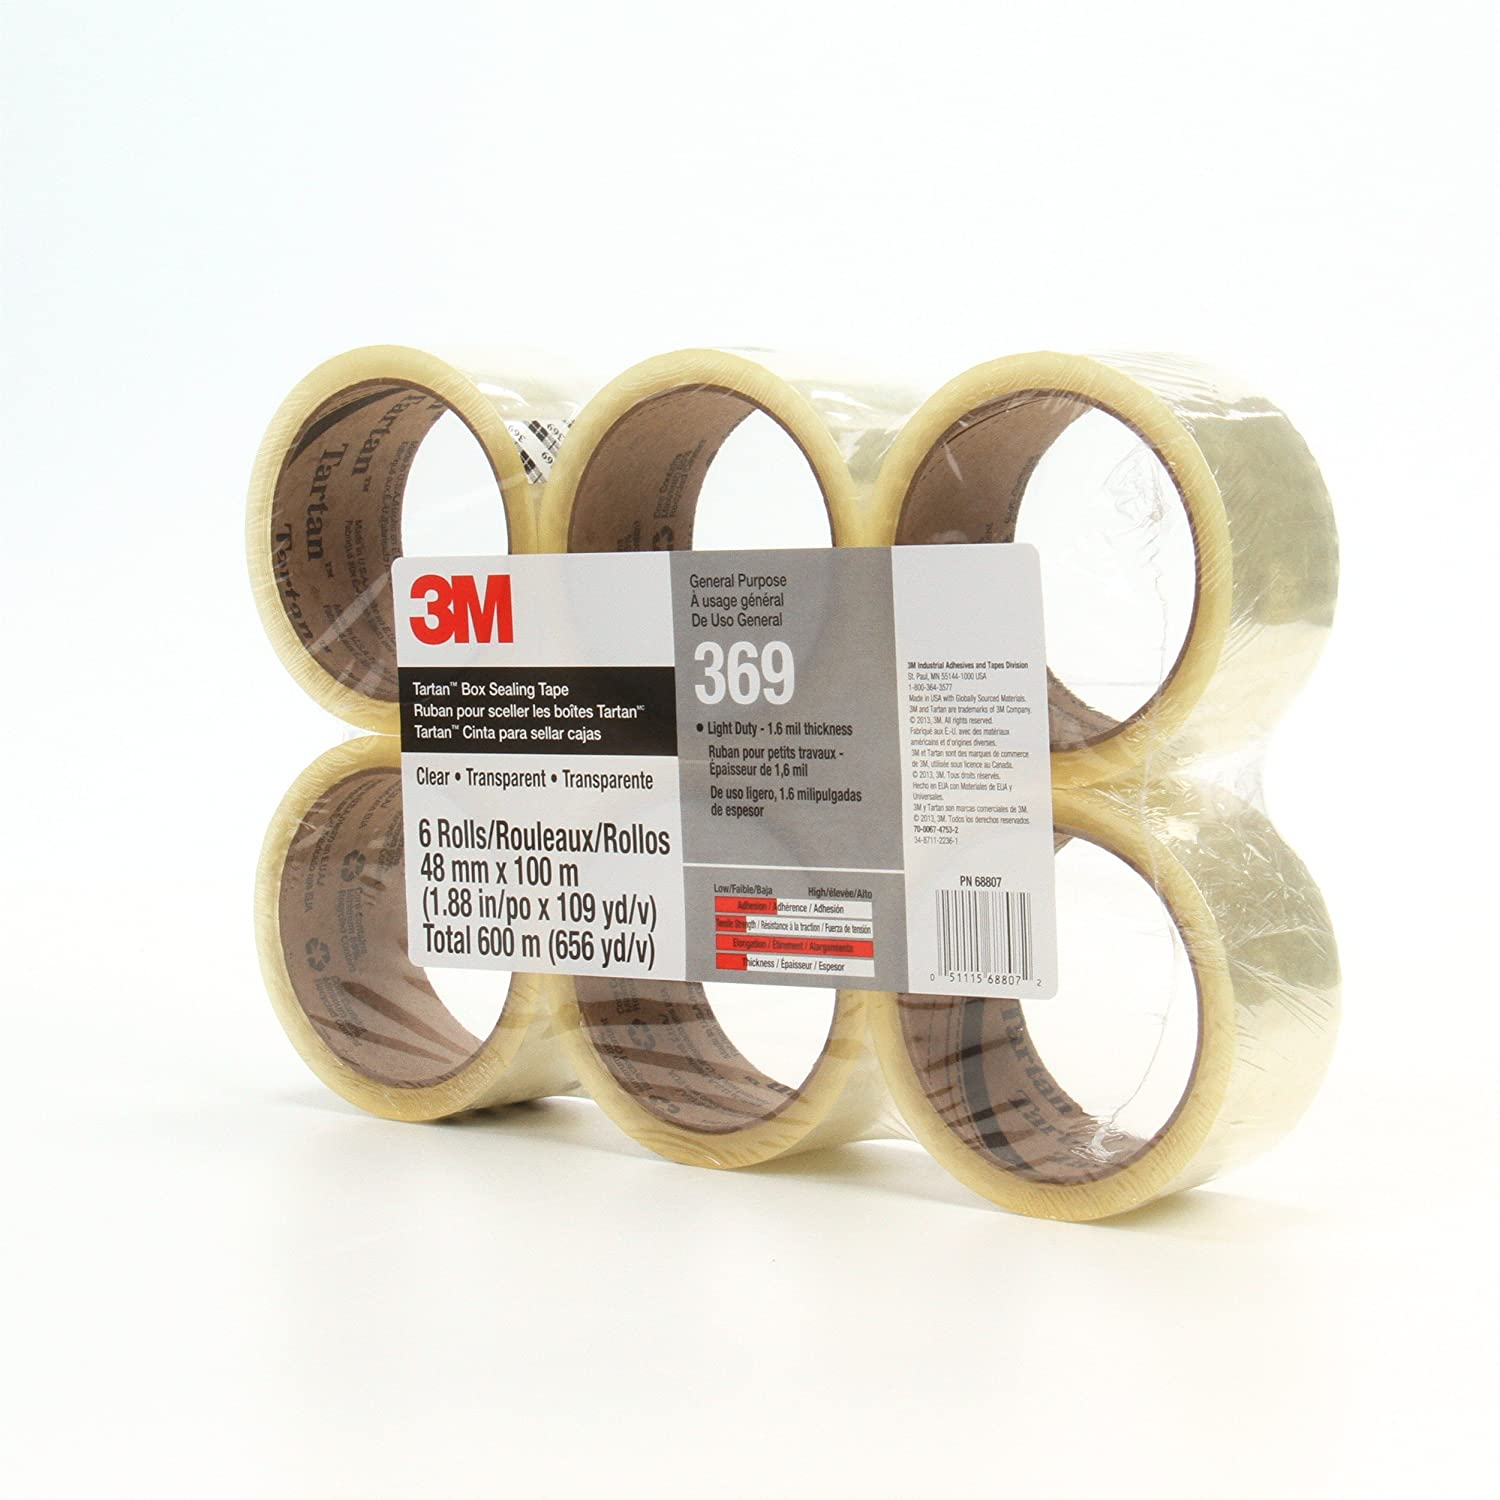 Tartan Box Sealing Tape 369 Clear 48 mm x 50 m Conveniently Packaged Pack of 6